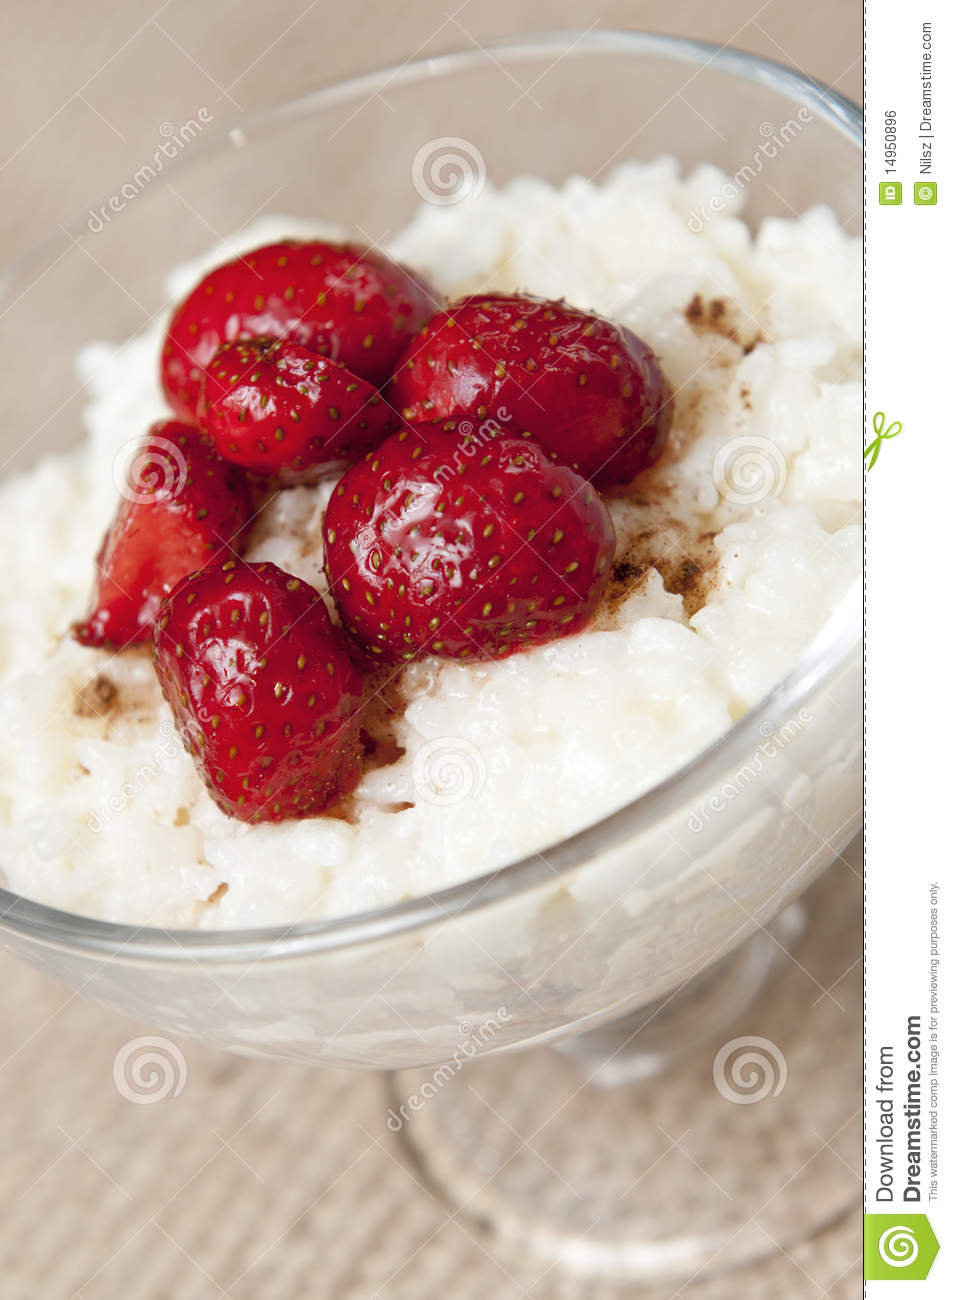 Dessert Rice Pudding With Strawberries Royalty Free Stock Image ...